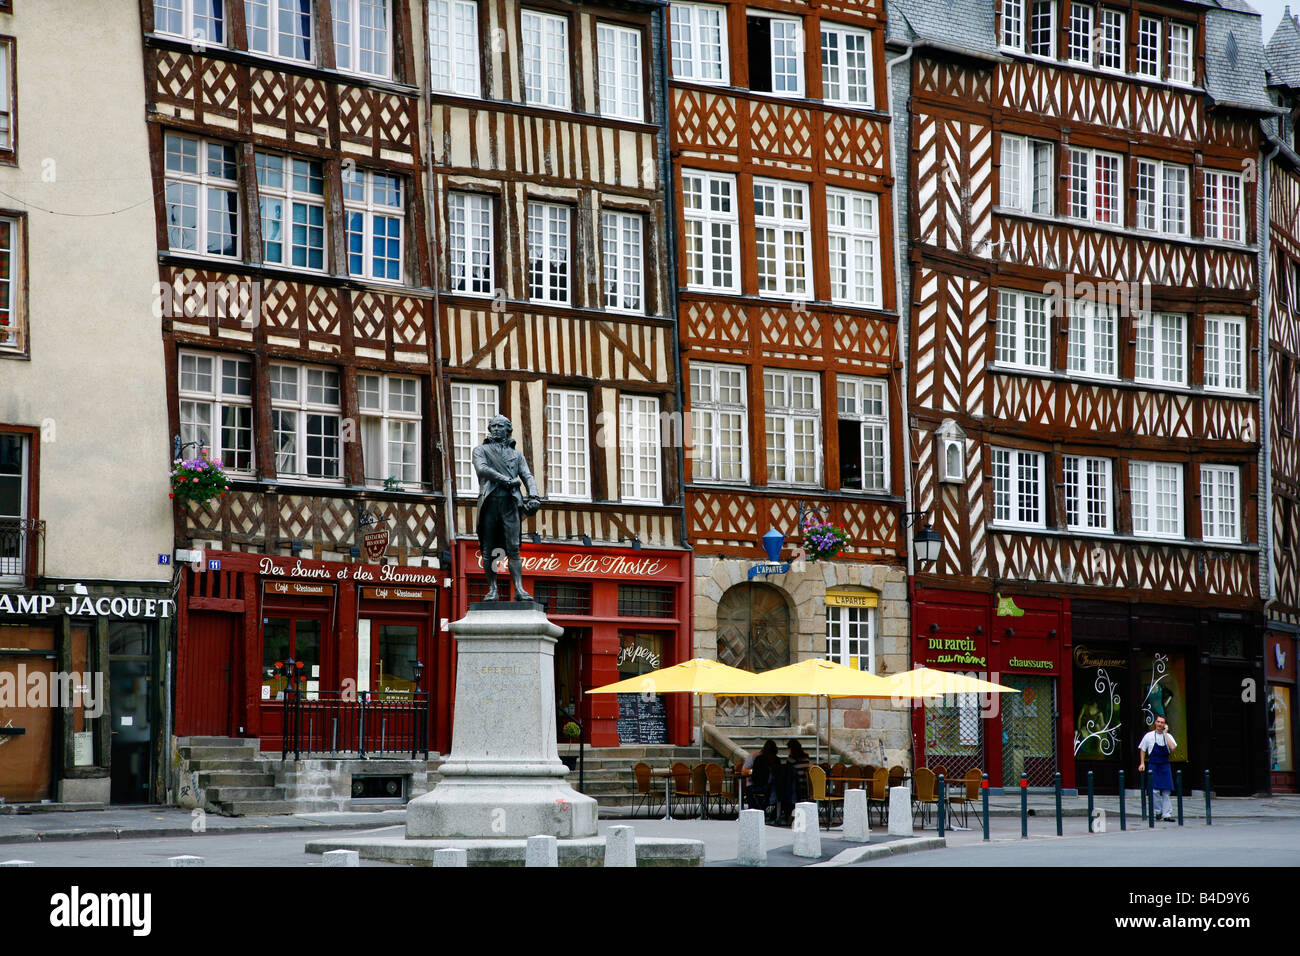 July 2008 - Place du Champ Jacquet in Rennes Brittany France - Stock Image